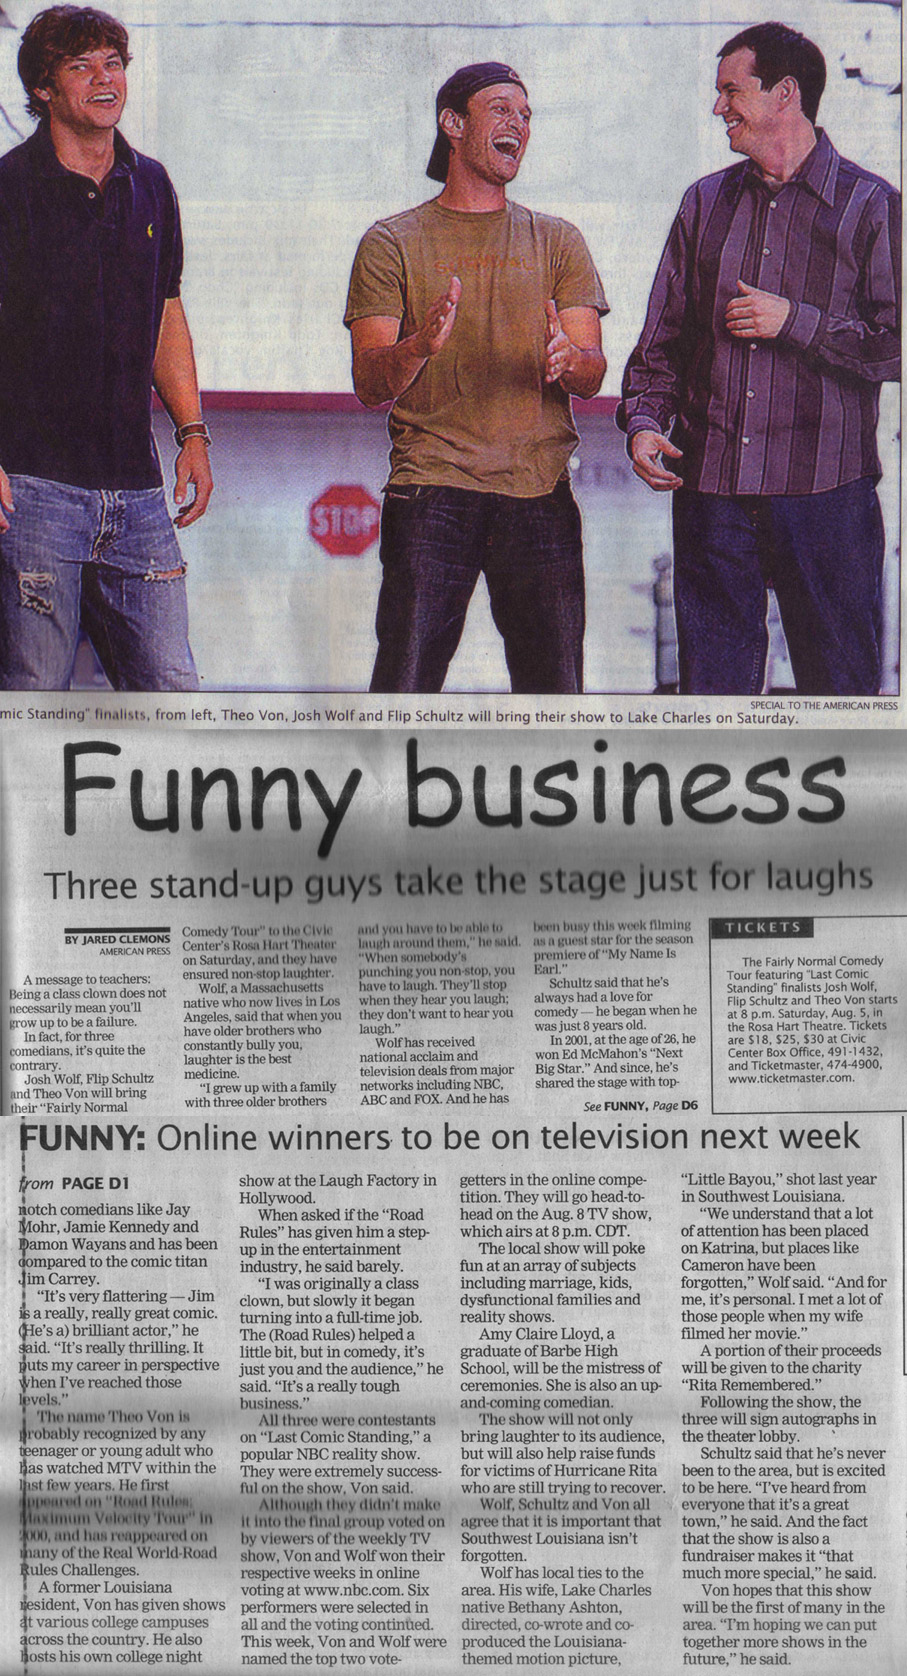 Funny Business-2006 (from 'The Fairly Normal Comedy Tour')